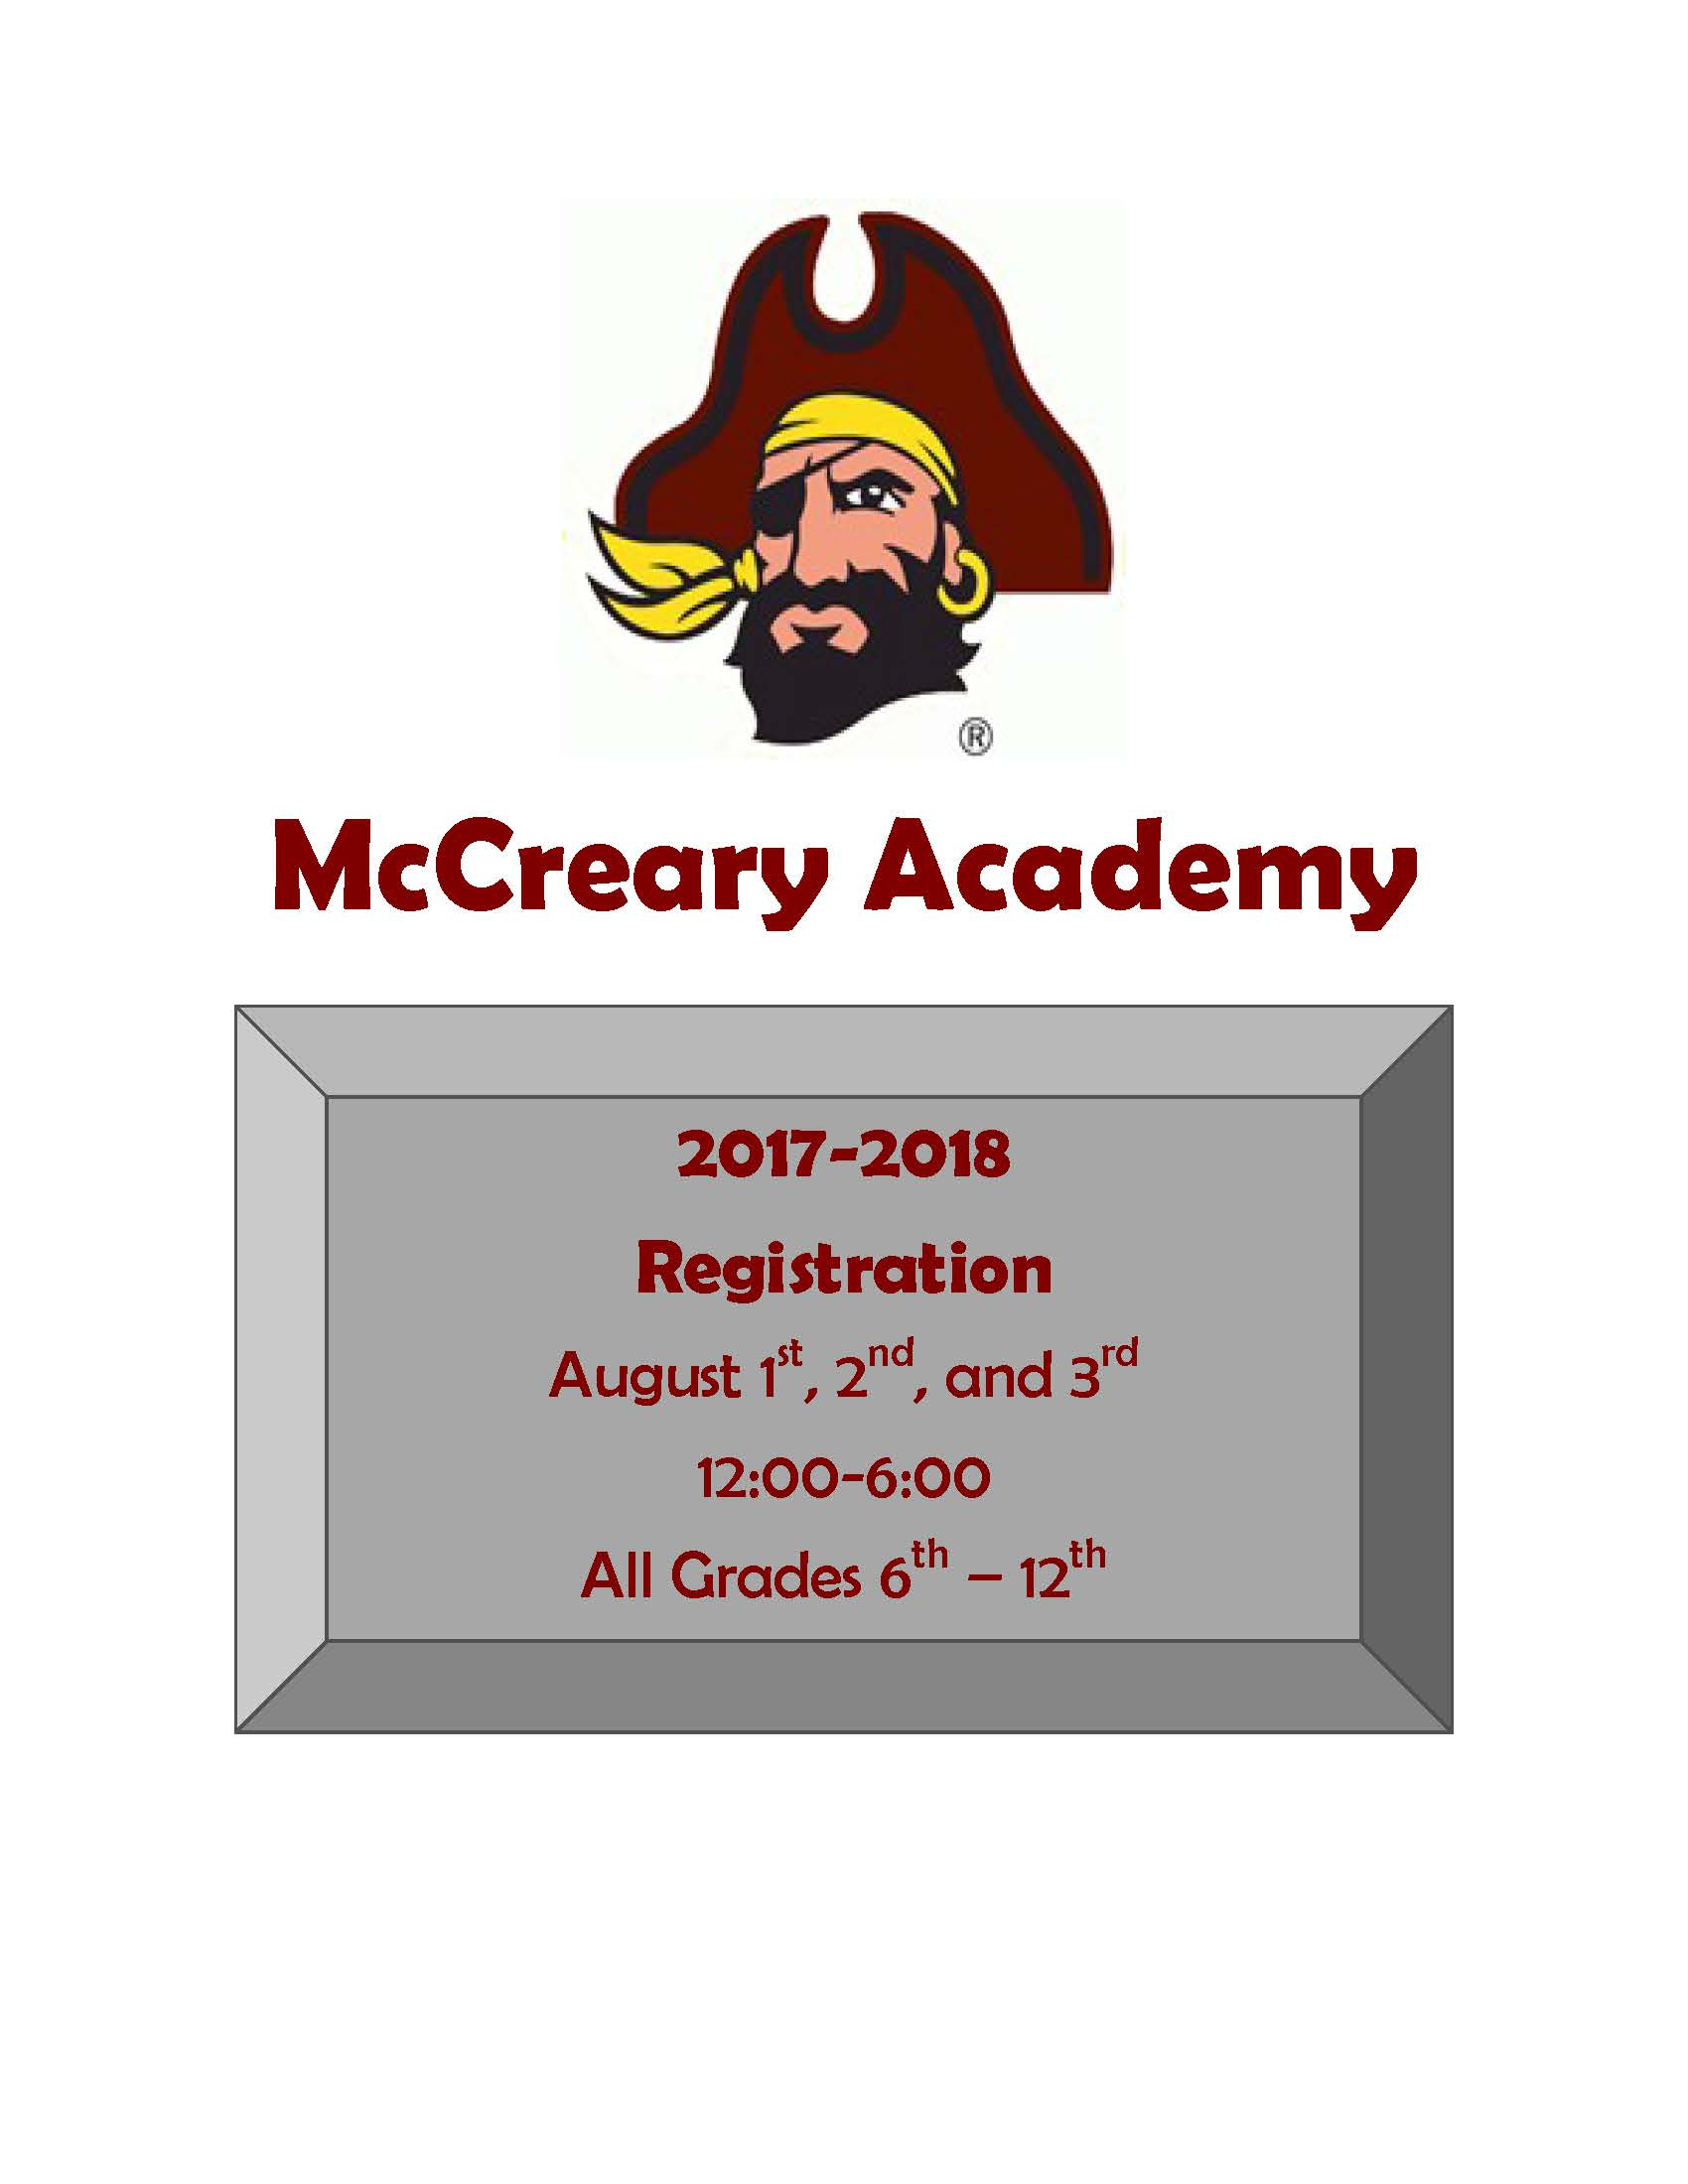 McCreary Academy Registration